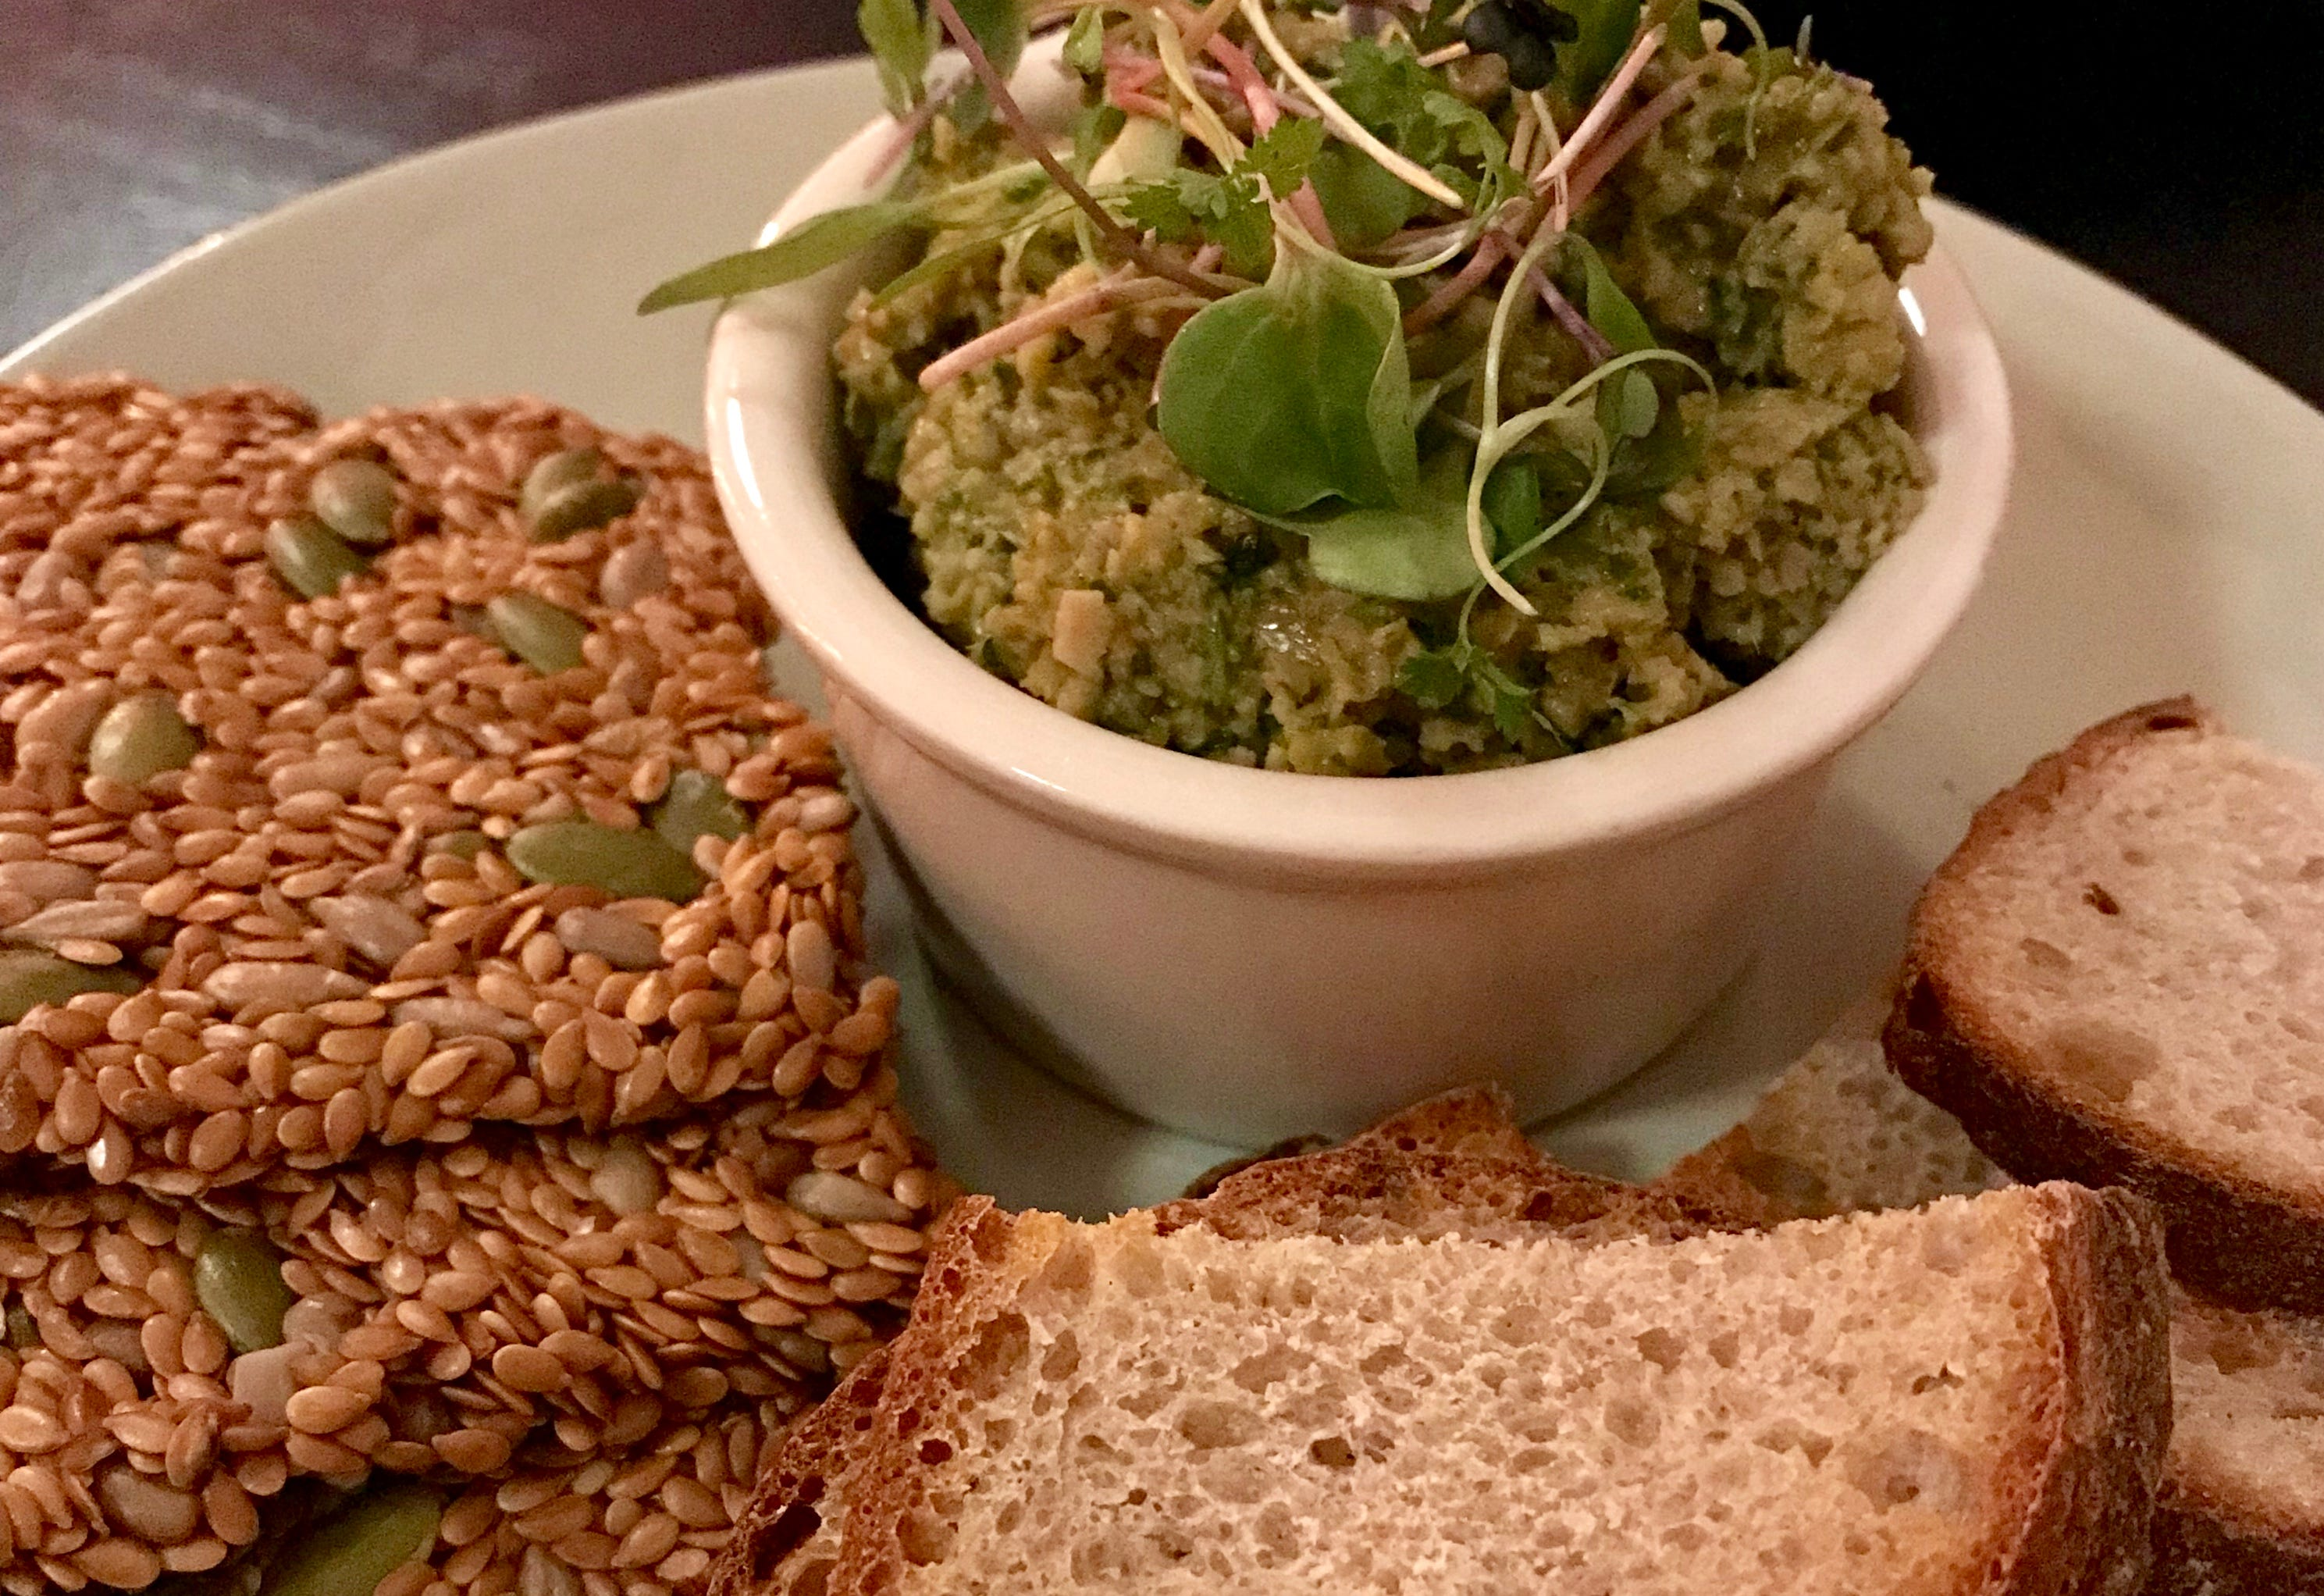 Olive tapenade with seed crackers and crusty bread is an example of the shareable plates on the changing, vegan menu at Strange Town, 2101 N. Prospect Ave.